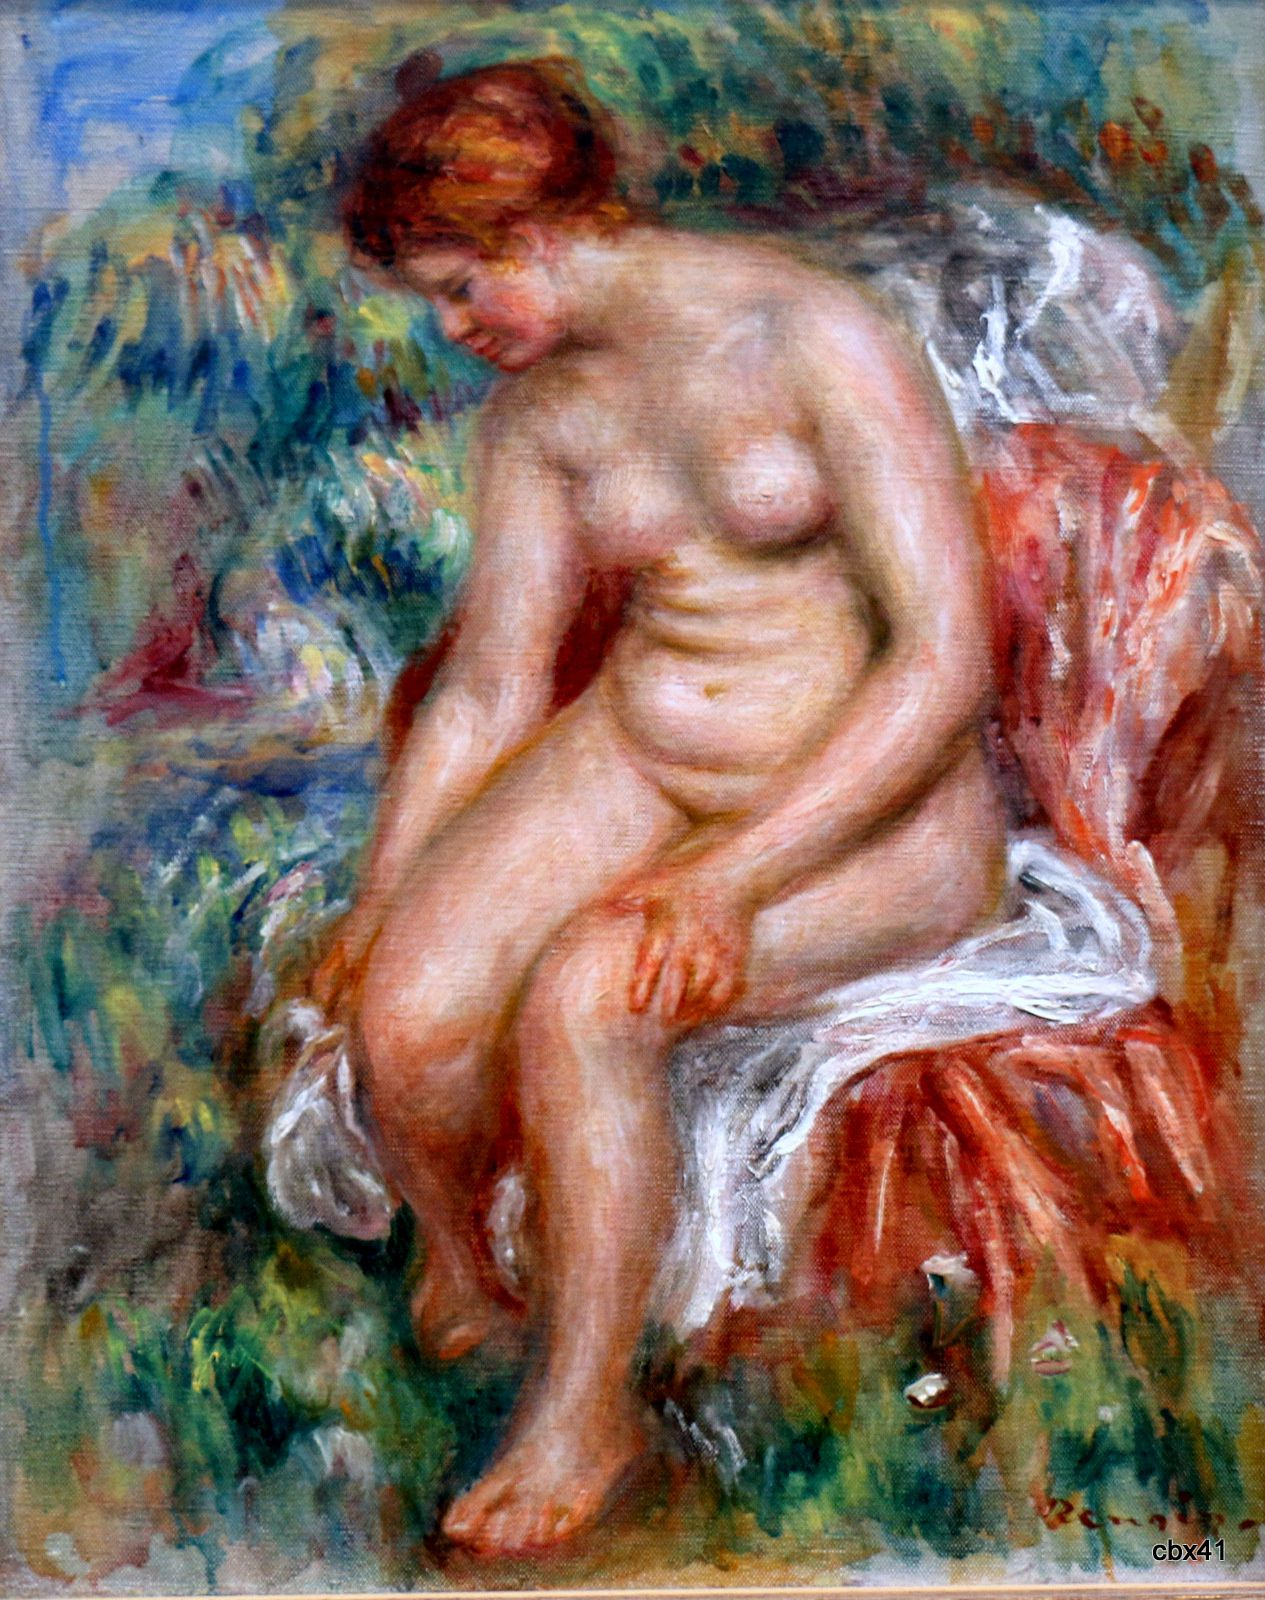 Pierre-Auguste Renoir, baigneuse assise s'essuyant une jambe